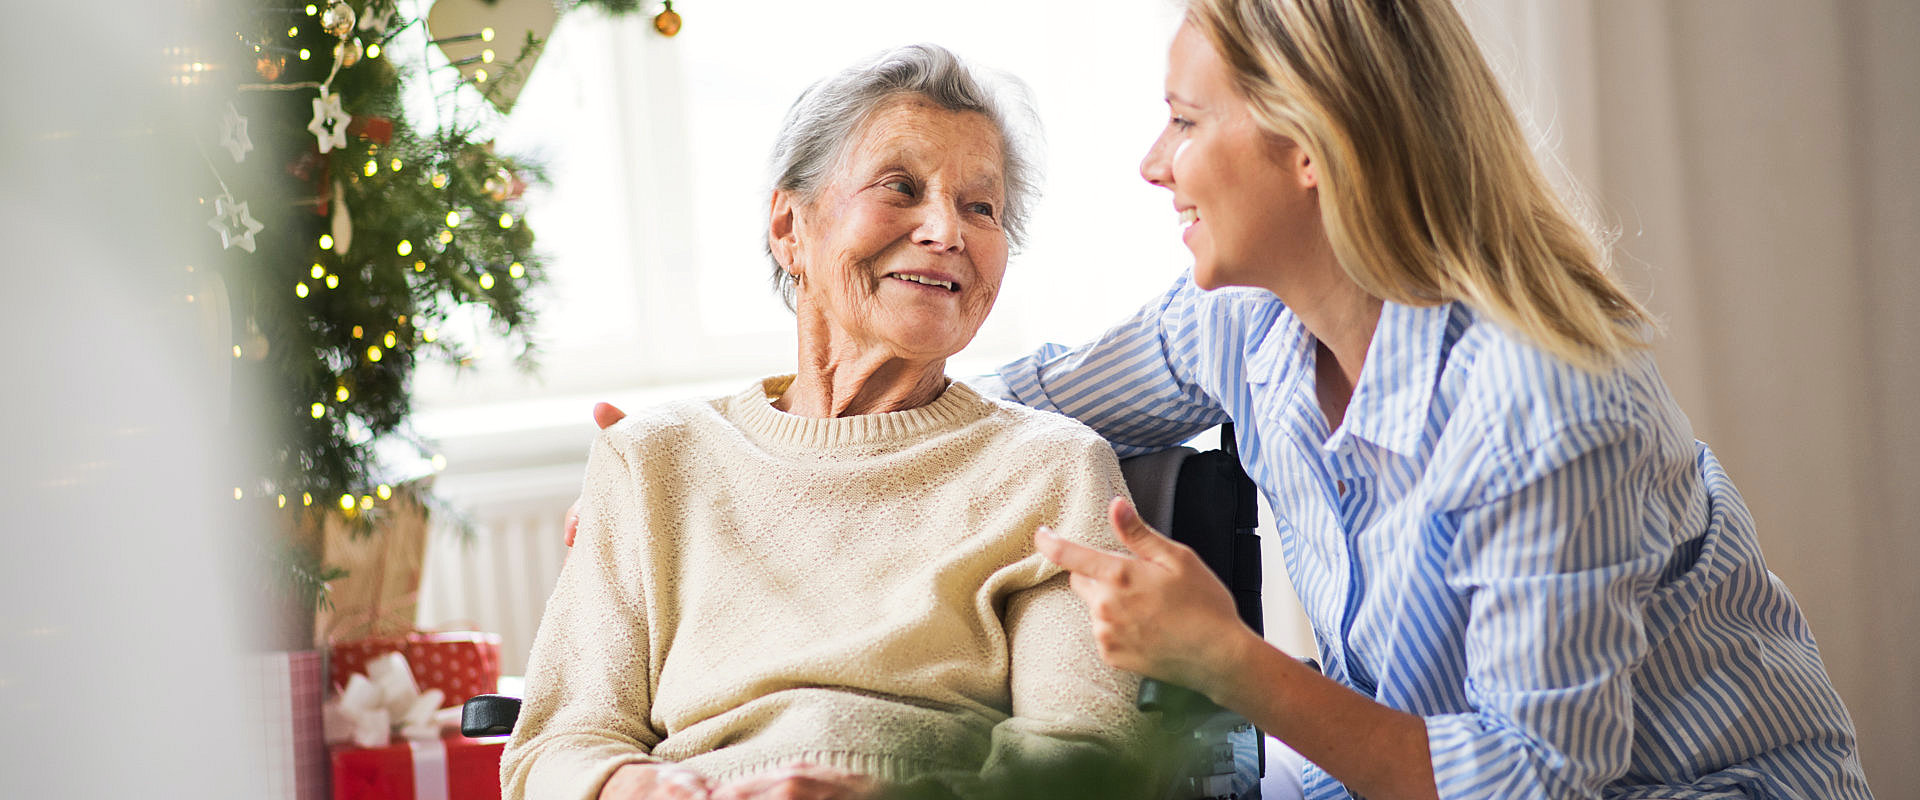 caregiver talking with her senior patient